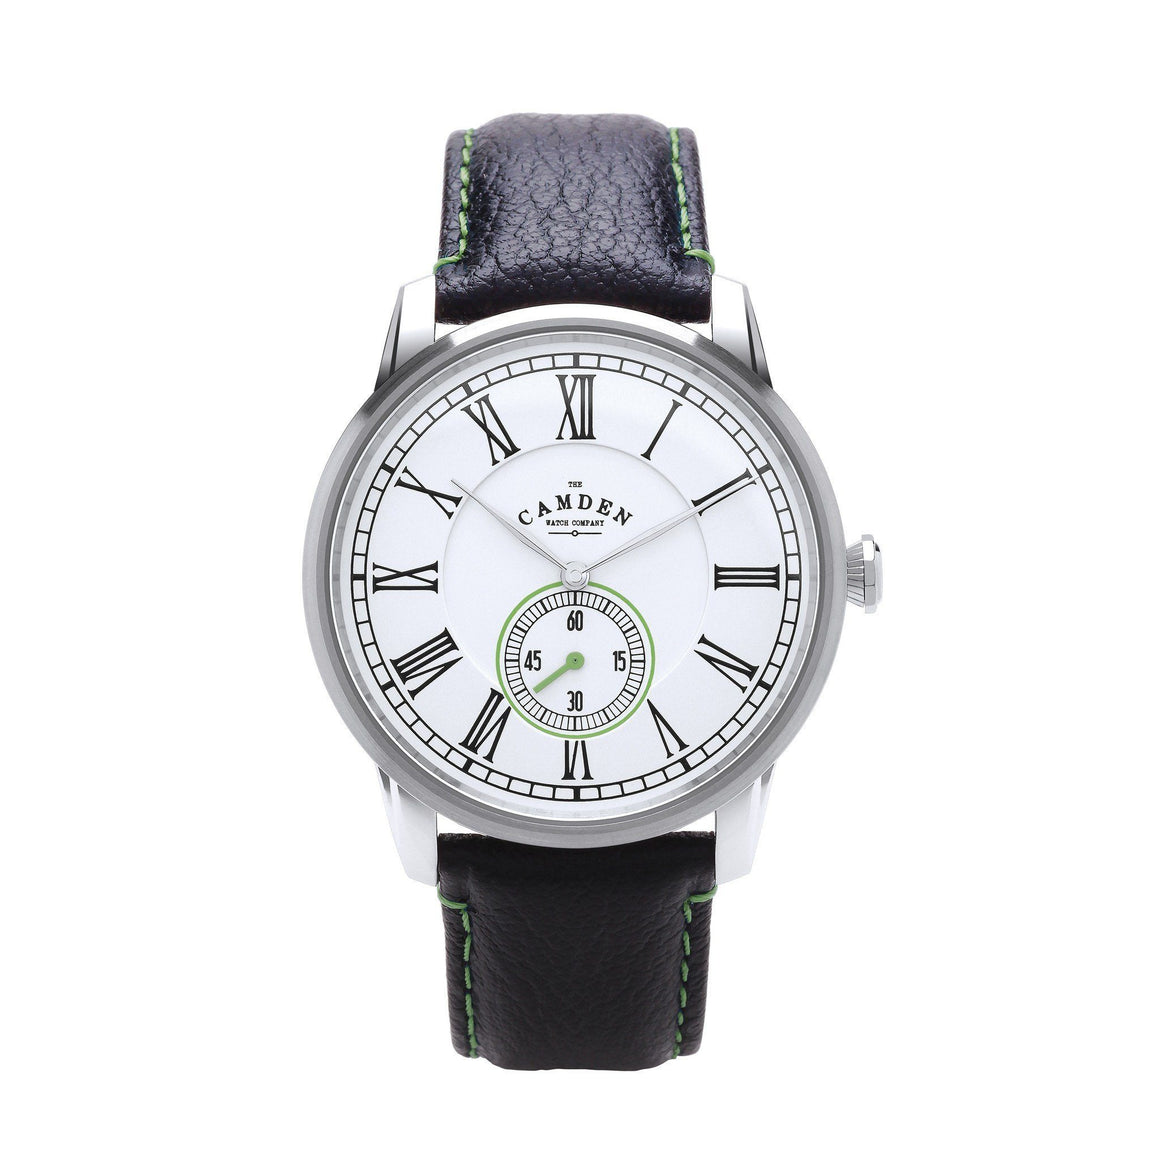 No.29 Gents Camden Watch -Steel, Black And Green